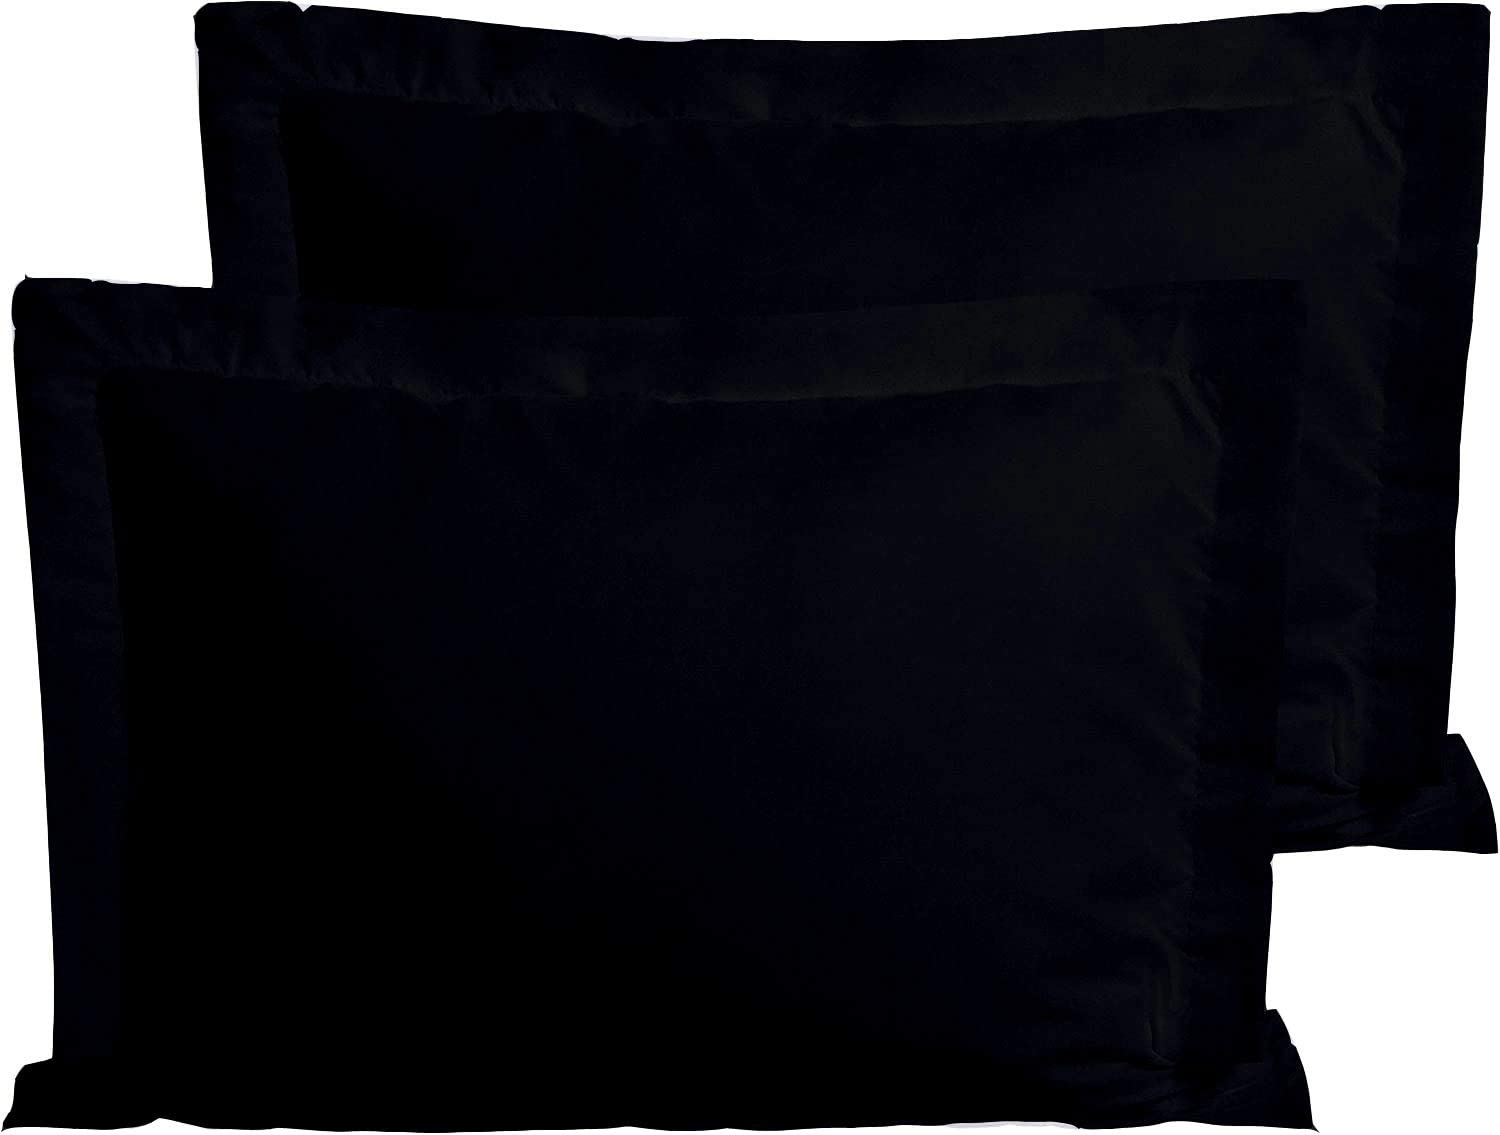 Trust Layer 800 Thread Count 100% Organic Cotton King Sized 20 x 40 inch Pillow Shams Set of 2 Navy Blue Solid